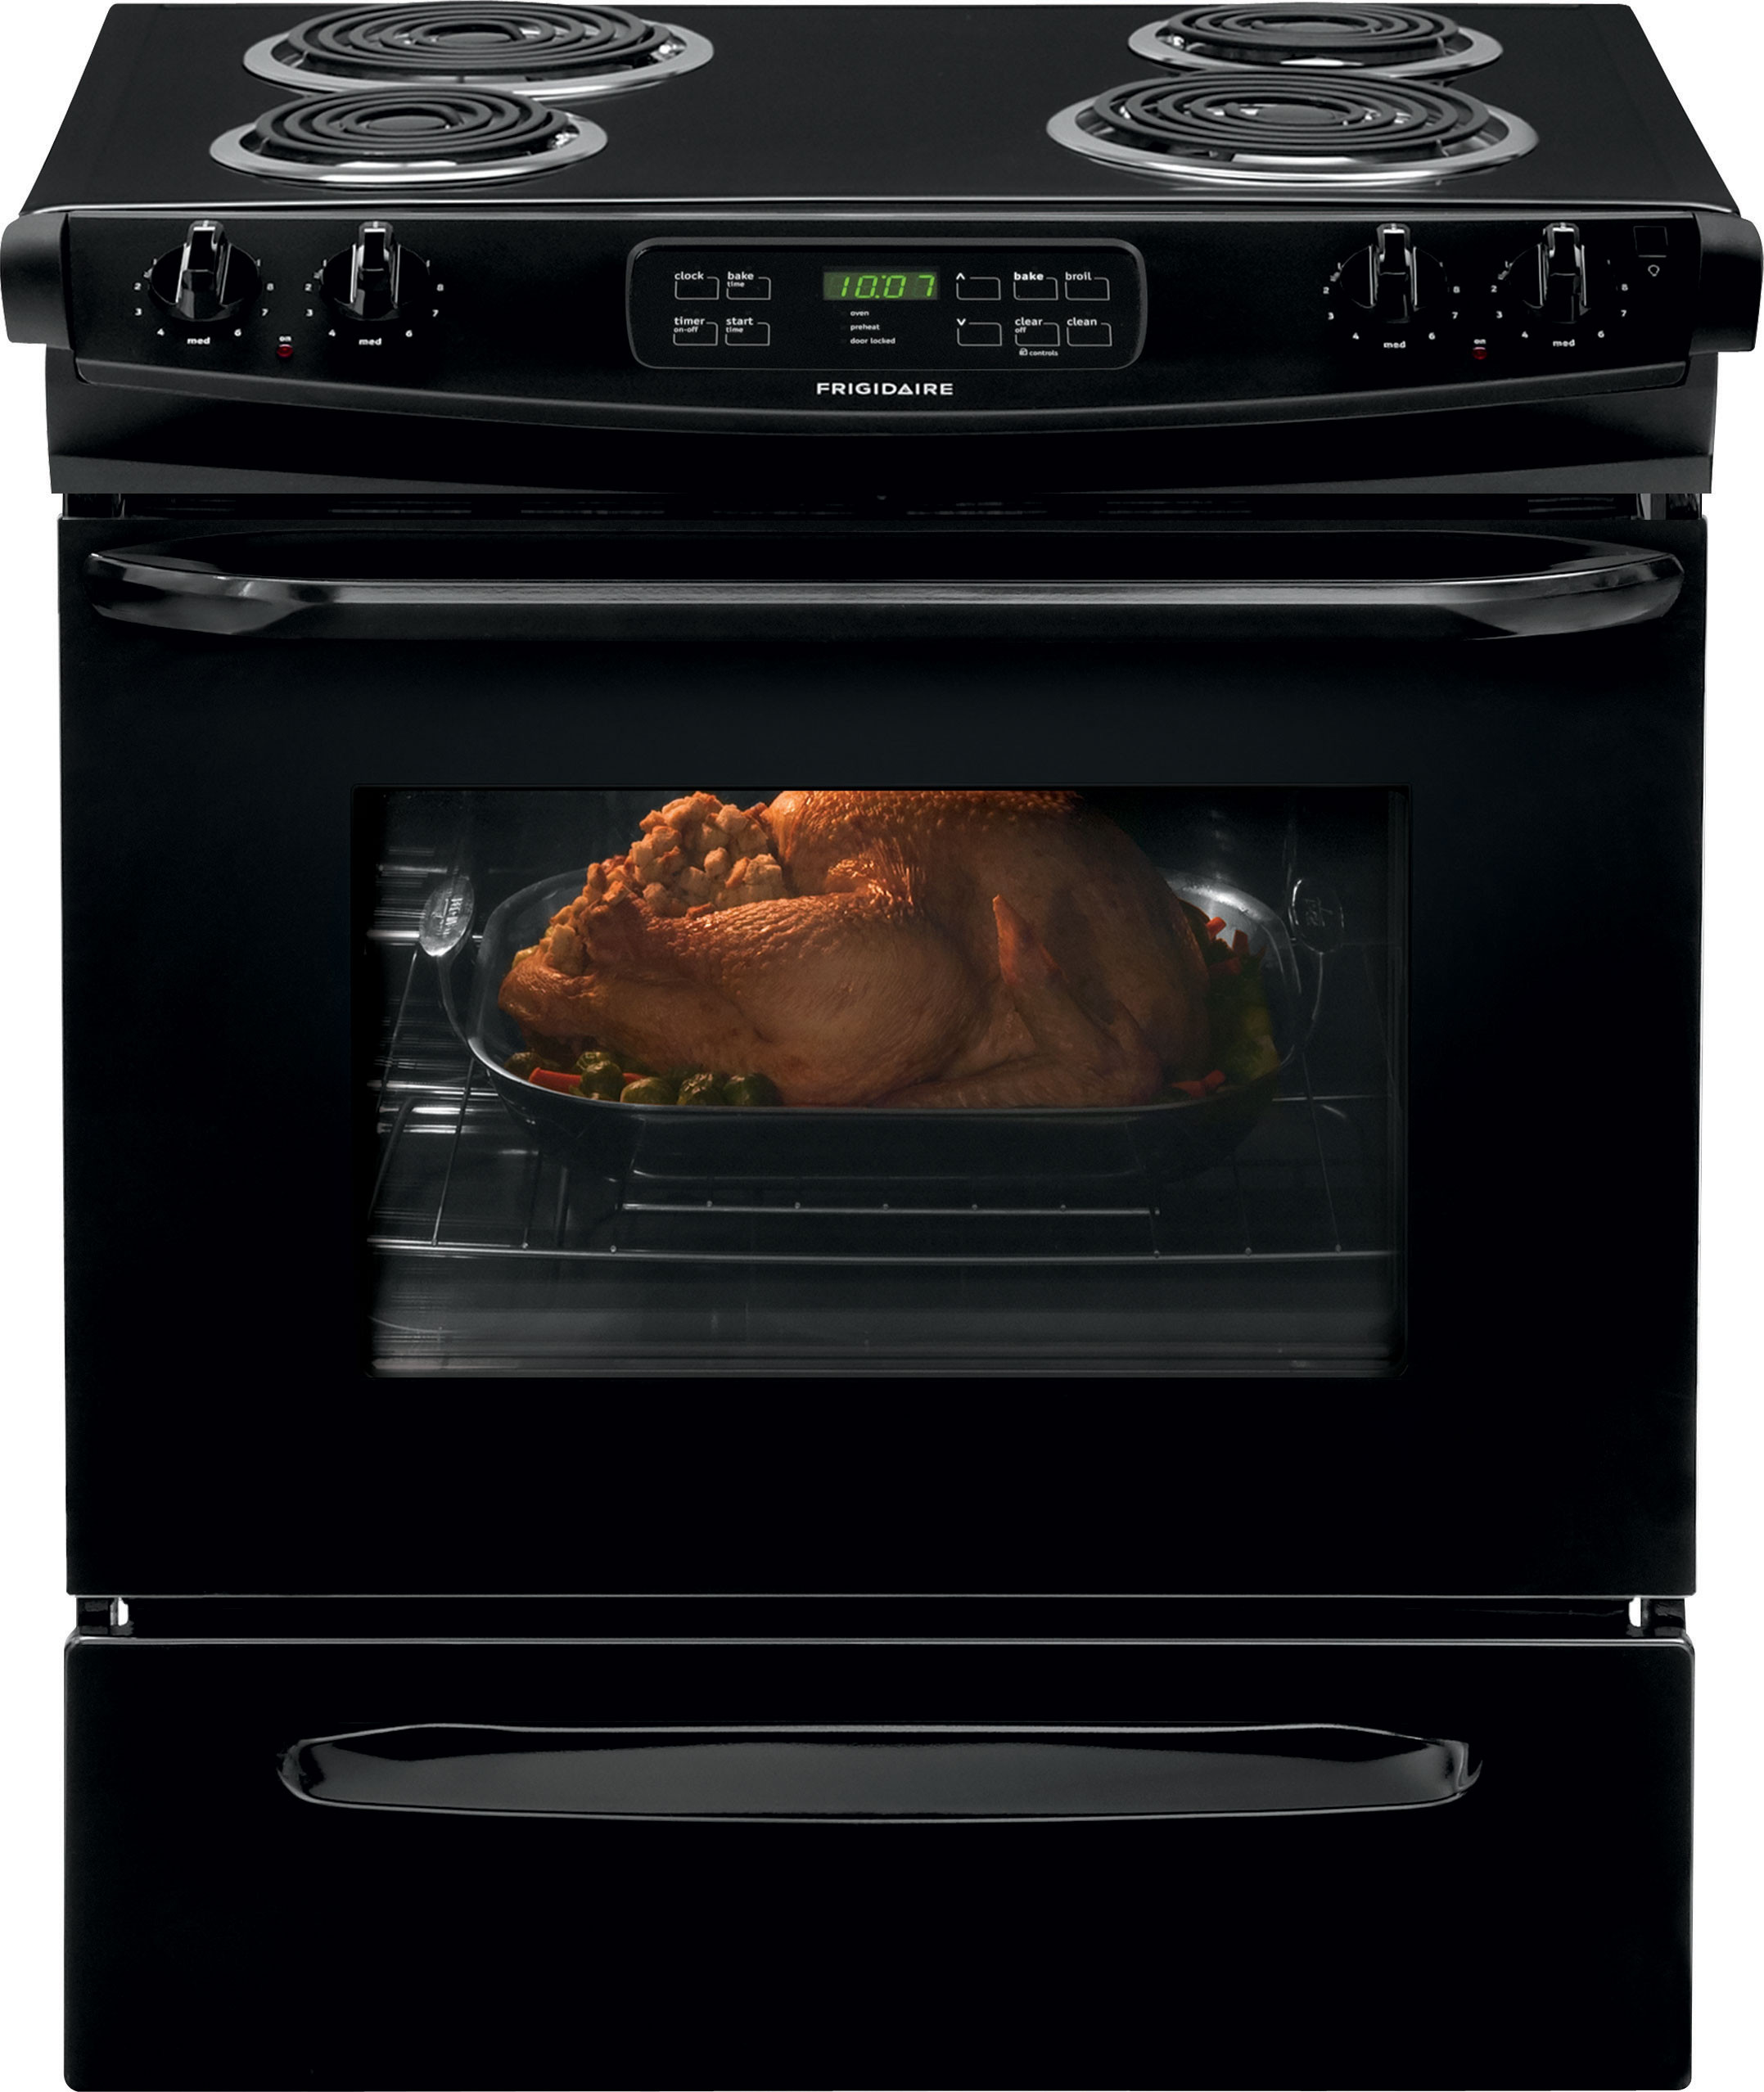 Frigidaire FFES3015PB 30 Inch Slide-In Electric Range with Multiple on frigidaire electric range door, samsung electric range wiring diagram, stove electric range wiring diagram, frigidaire electric stove, frigidaire electric range parts, frigidaire flair electric range, frigidaire oven parts diagram, frigidaire stove wiring-diagram, frigidaire electric oven element replacement,